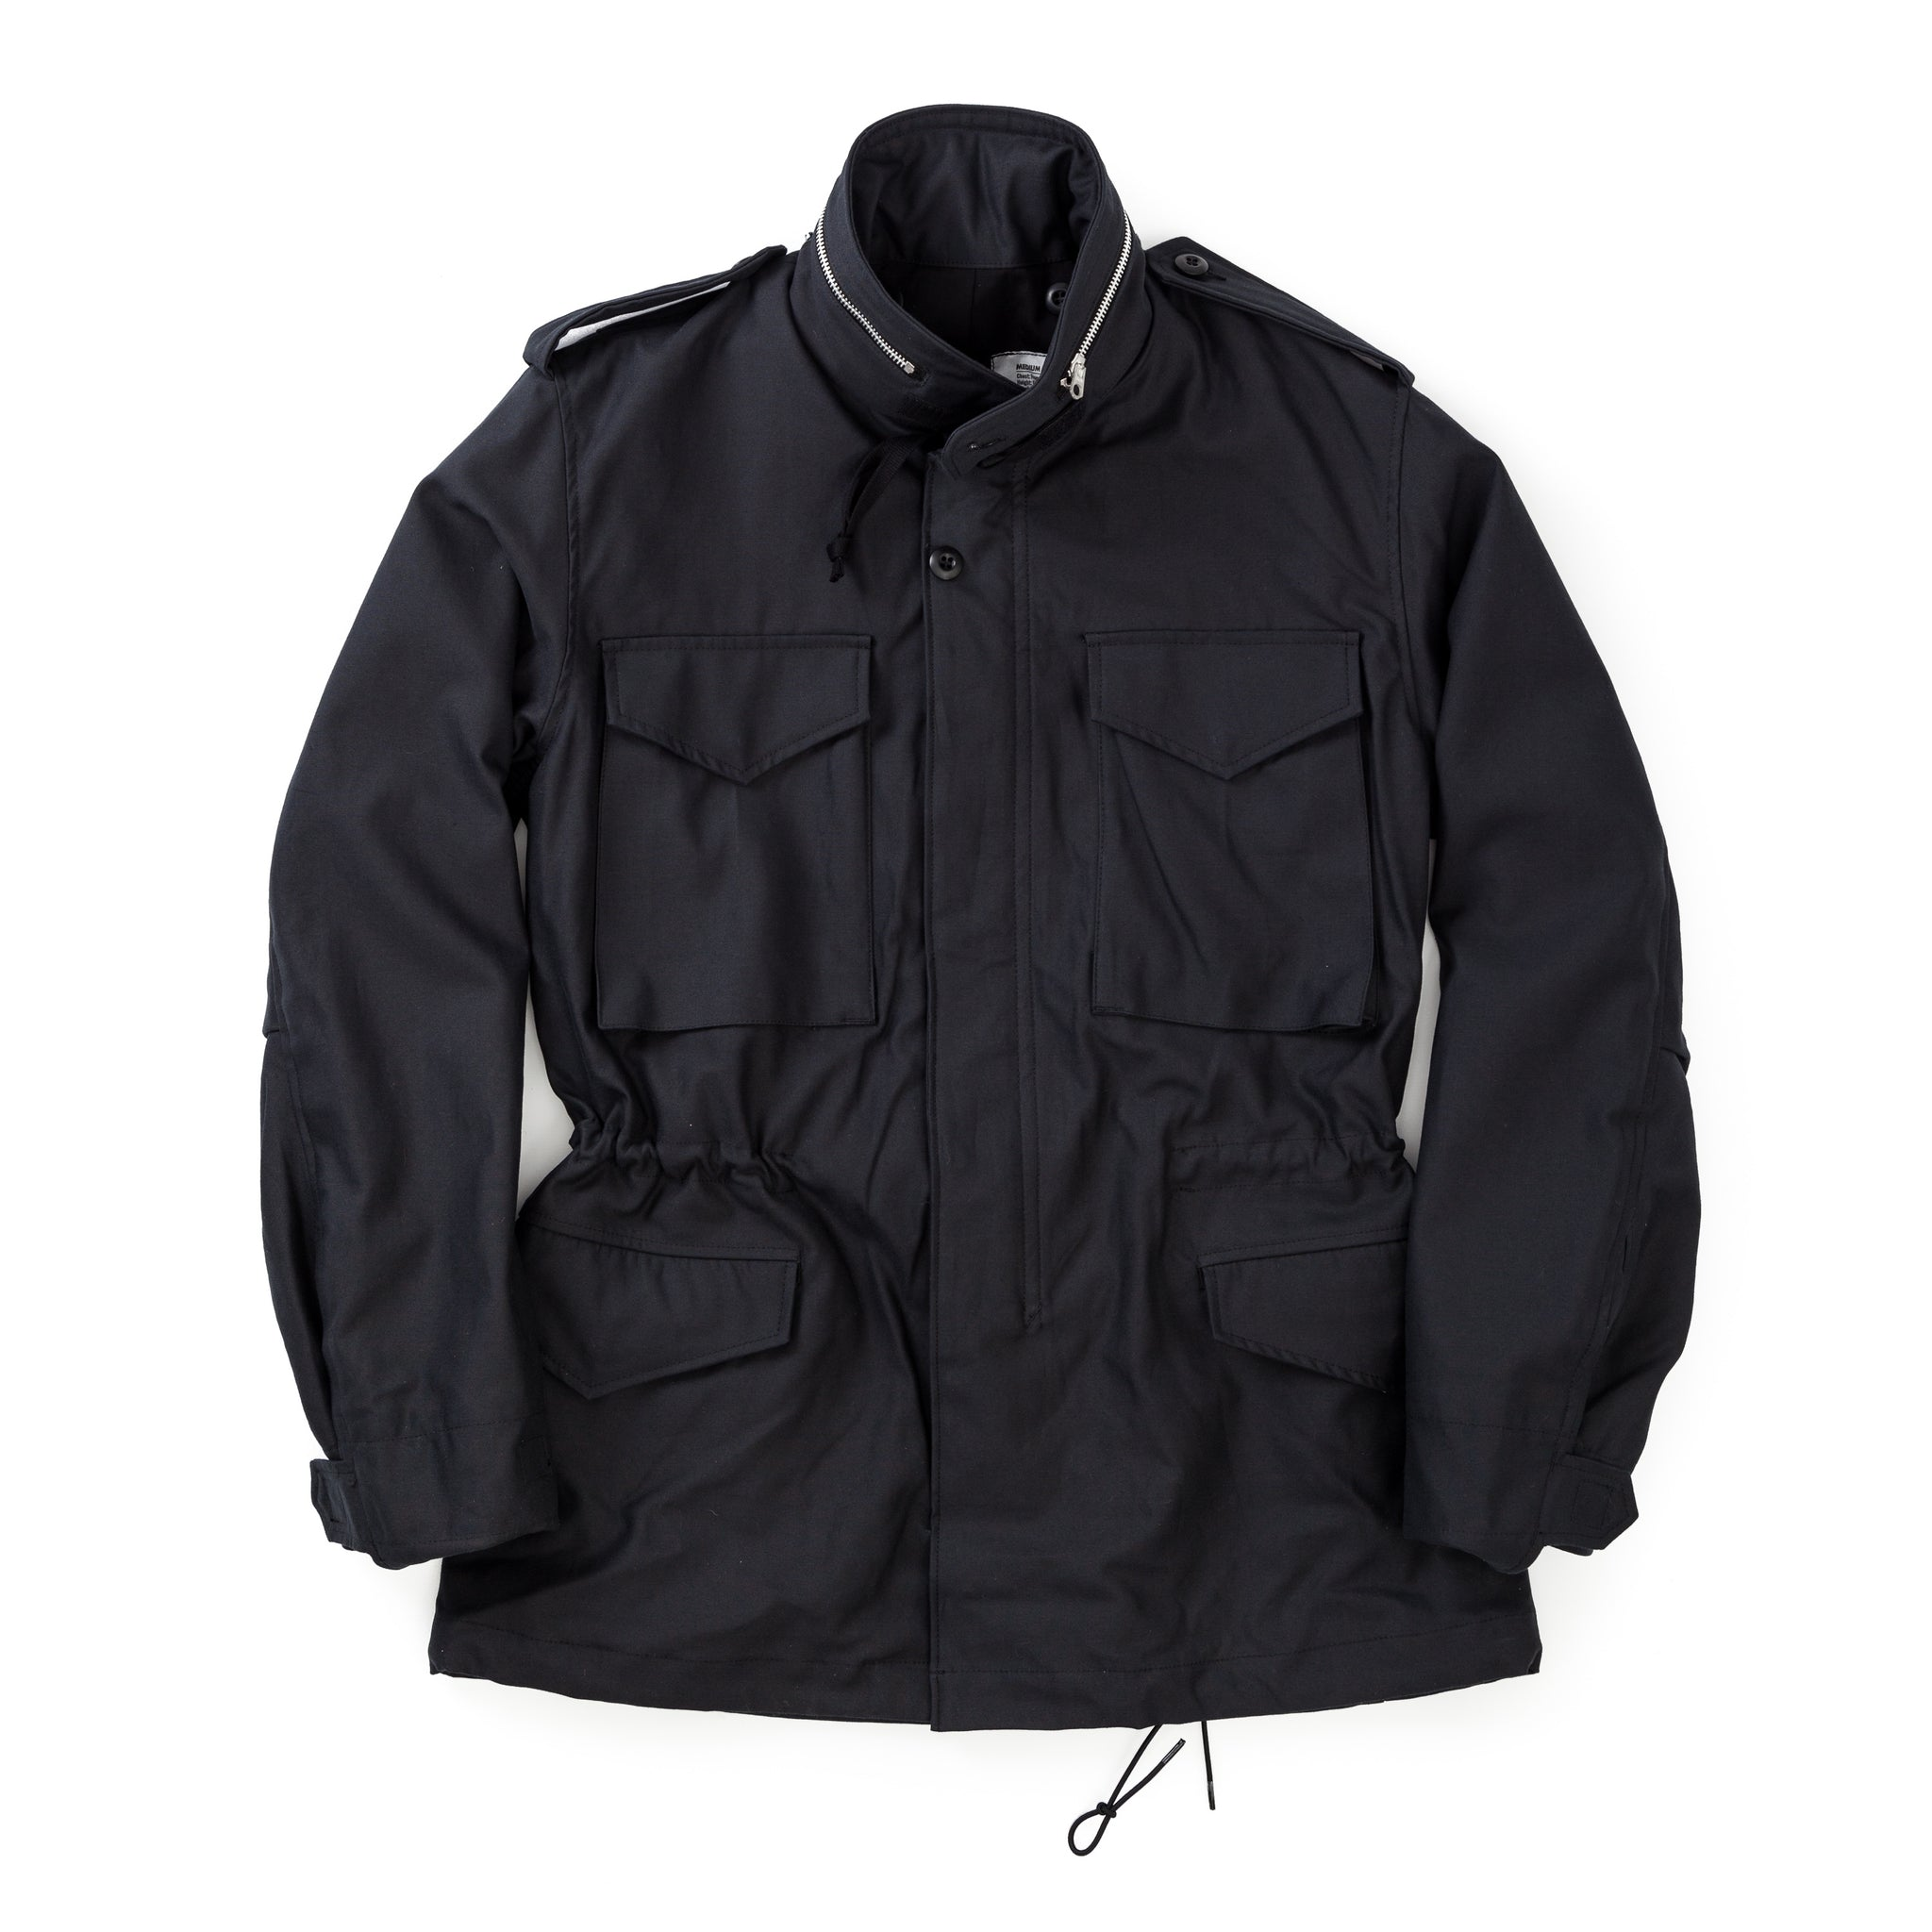 M-65 Field Jacket Black Over-Dye